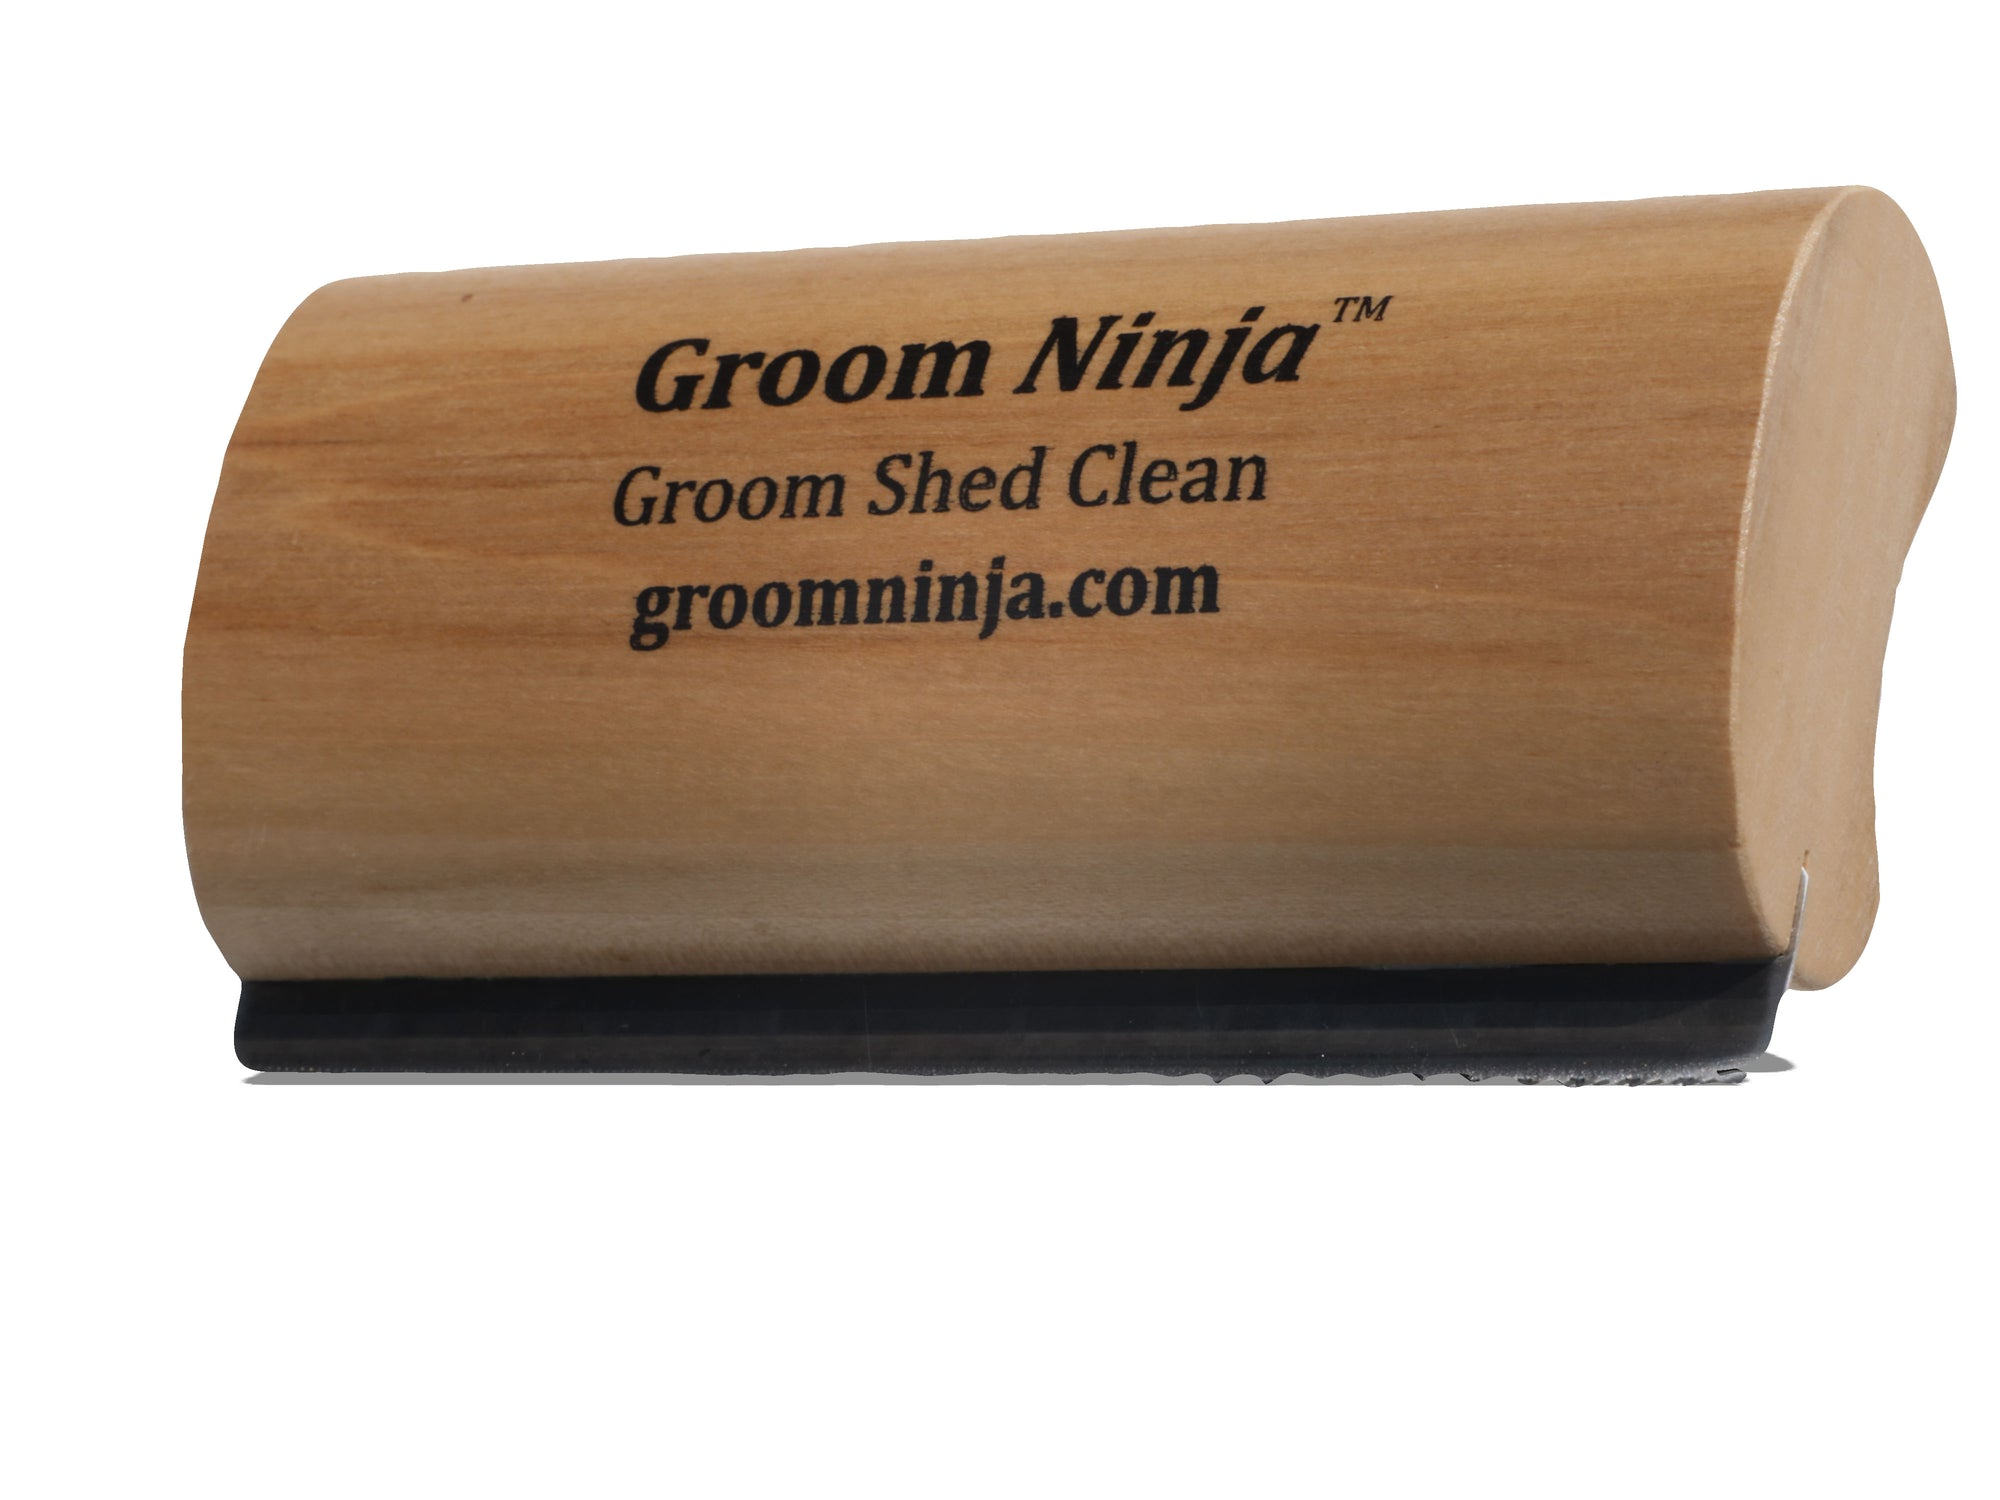 Groom Ninja 2.0 Medium